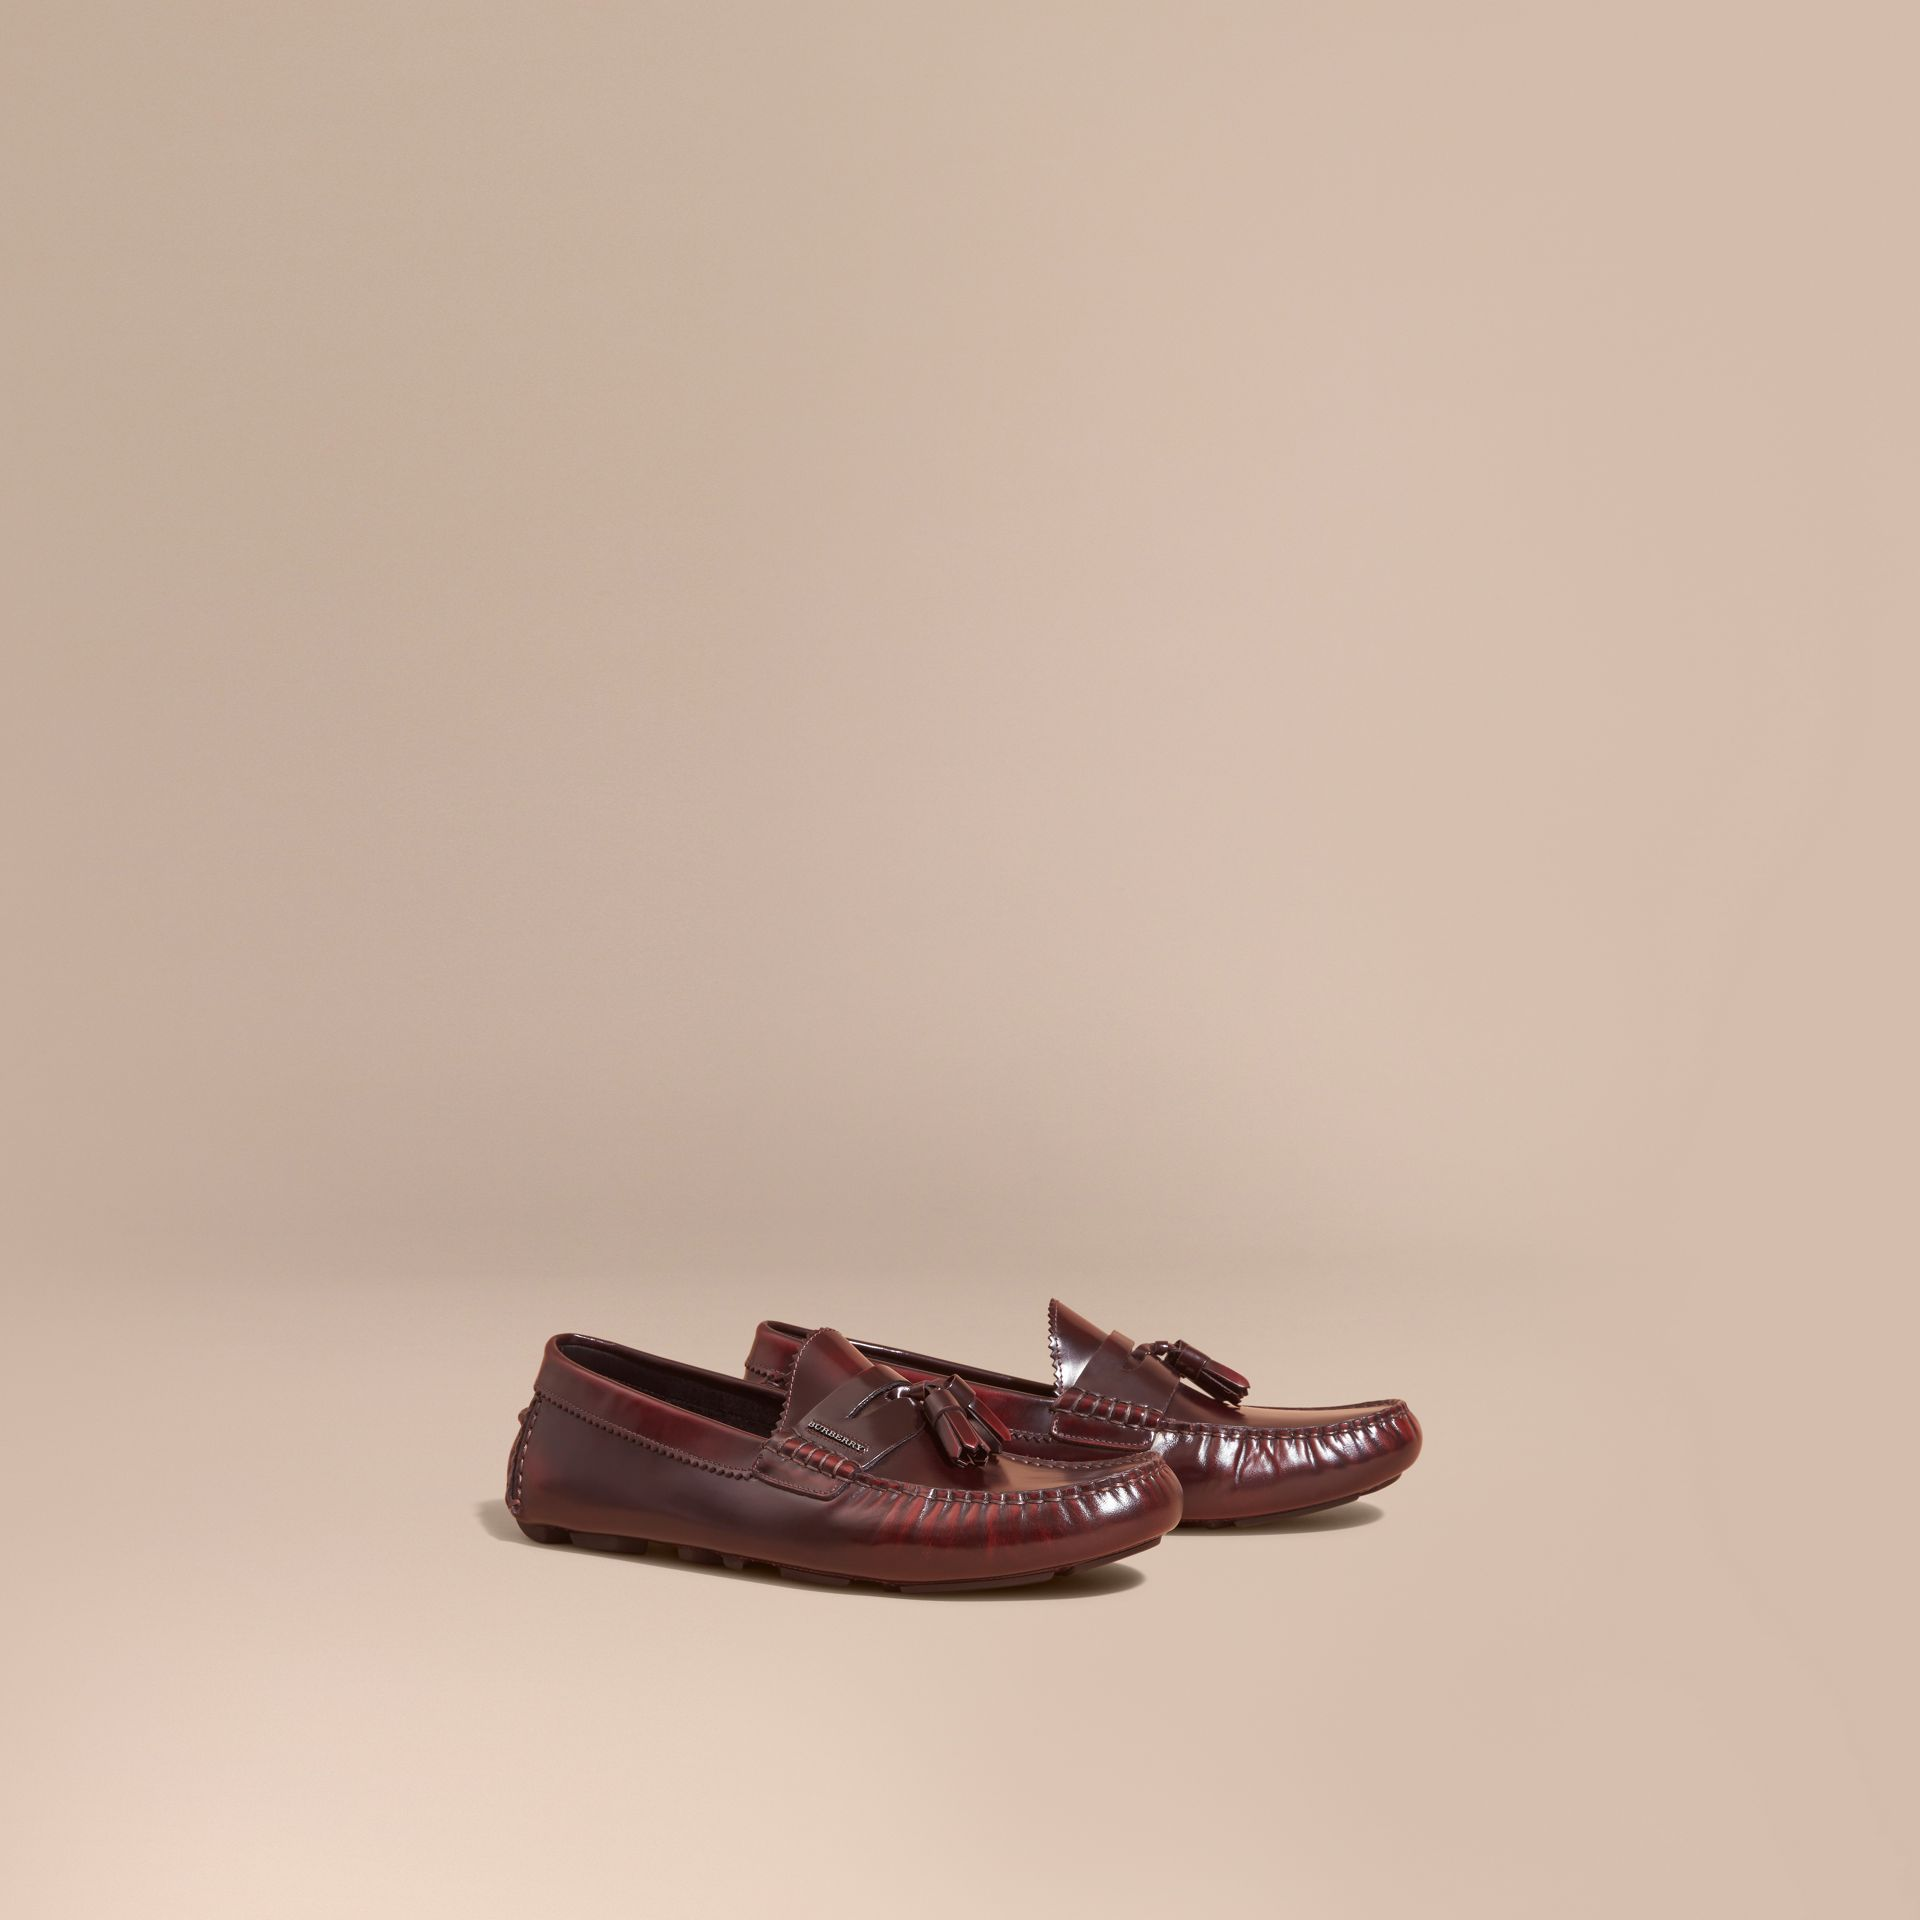 Tasselled Polished Leather Loafers in Bordeaux - Men | Burberry - gallery image 1